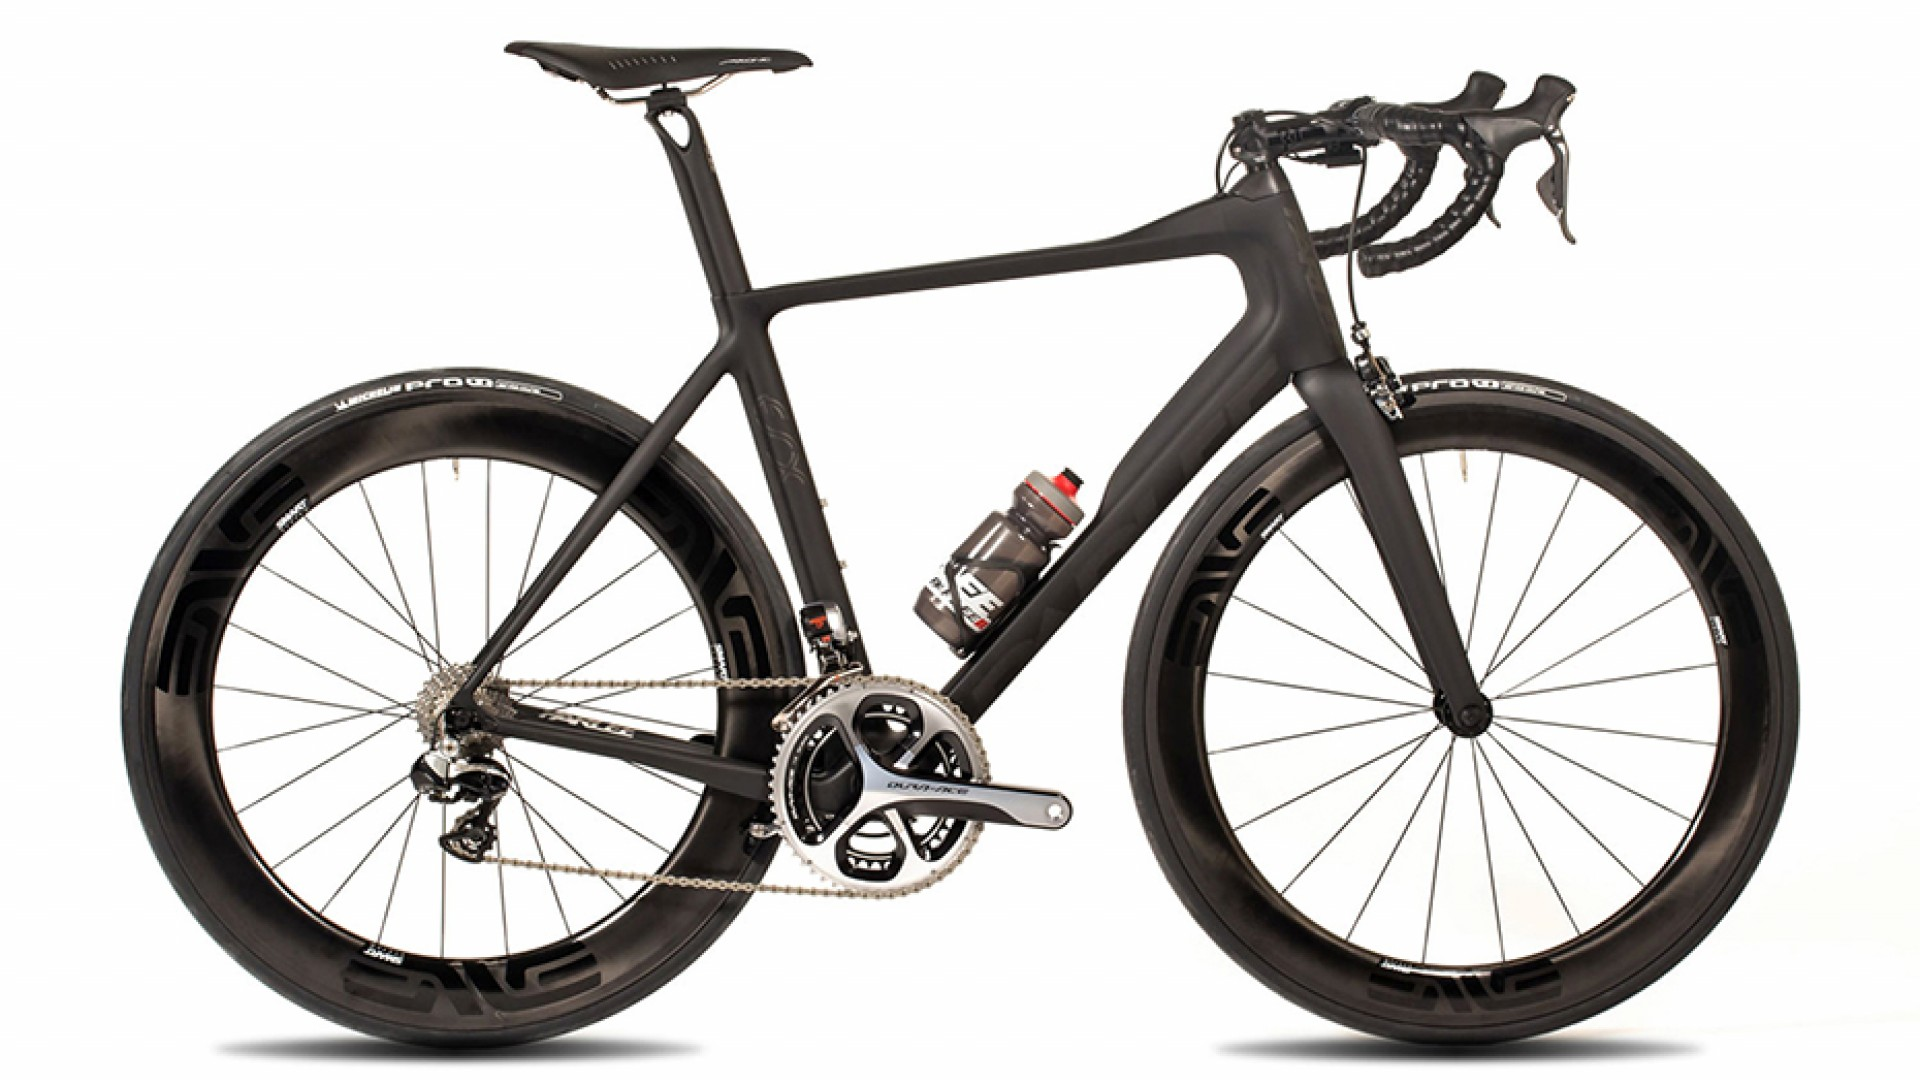 Parlee ESX, £10,000  Avant-garde loveliness from US carbon fibre masters Parlee. Looks fast, goes even faster thanks to wind-cheating aero.